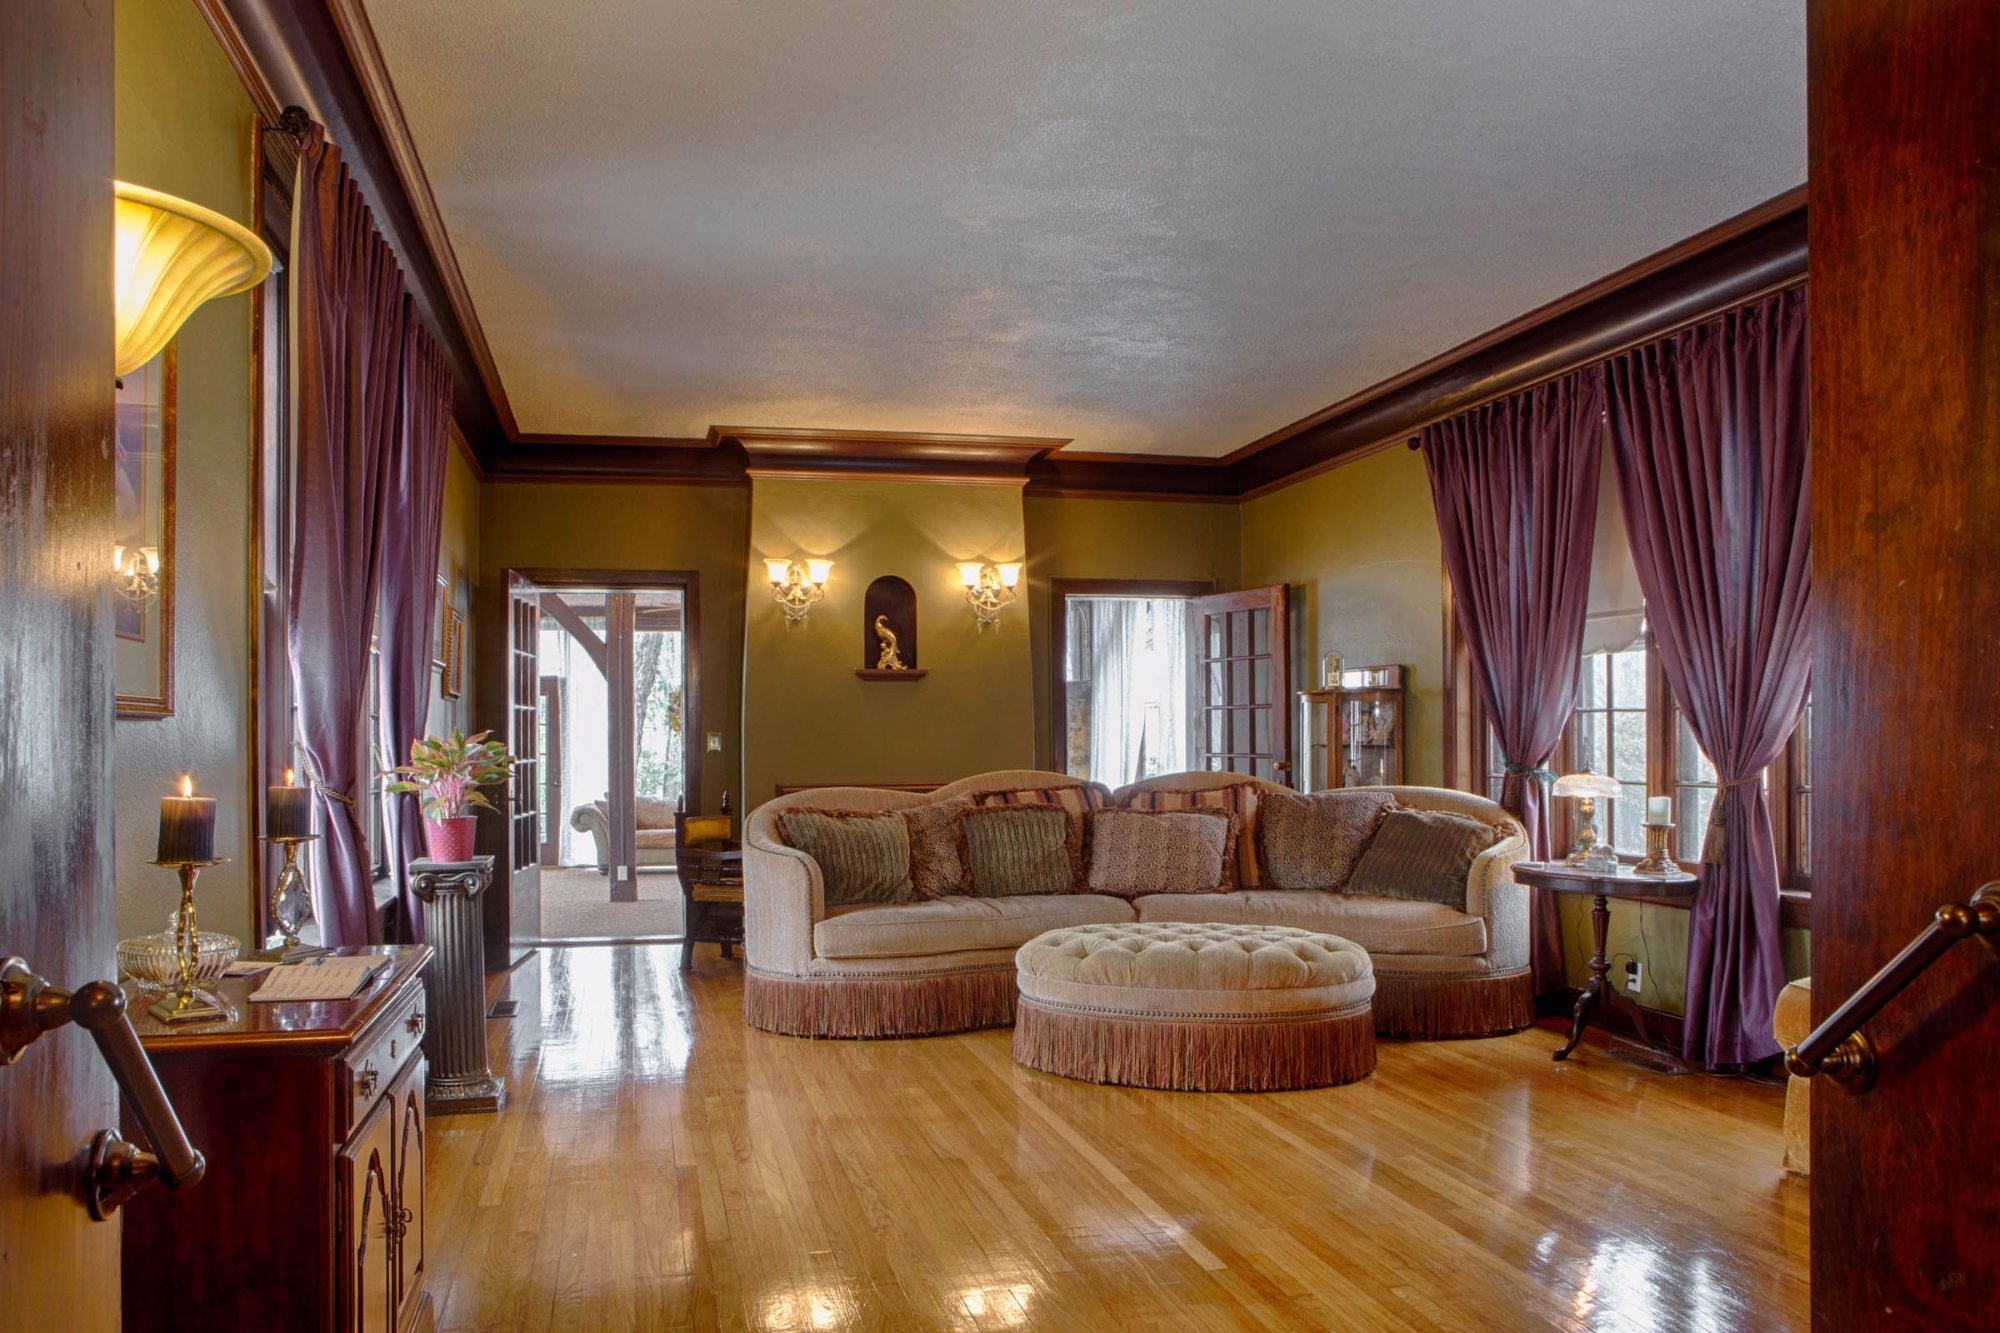 Graham-Carroll House Bed and Breakfast